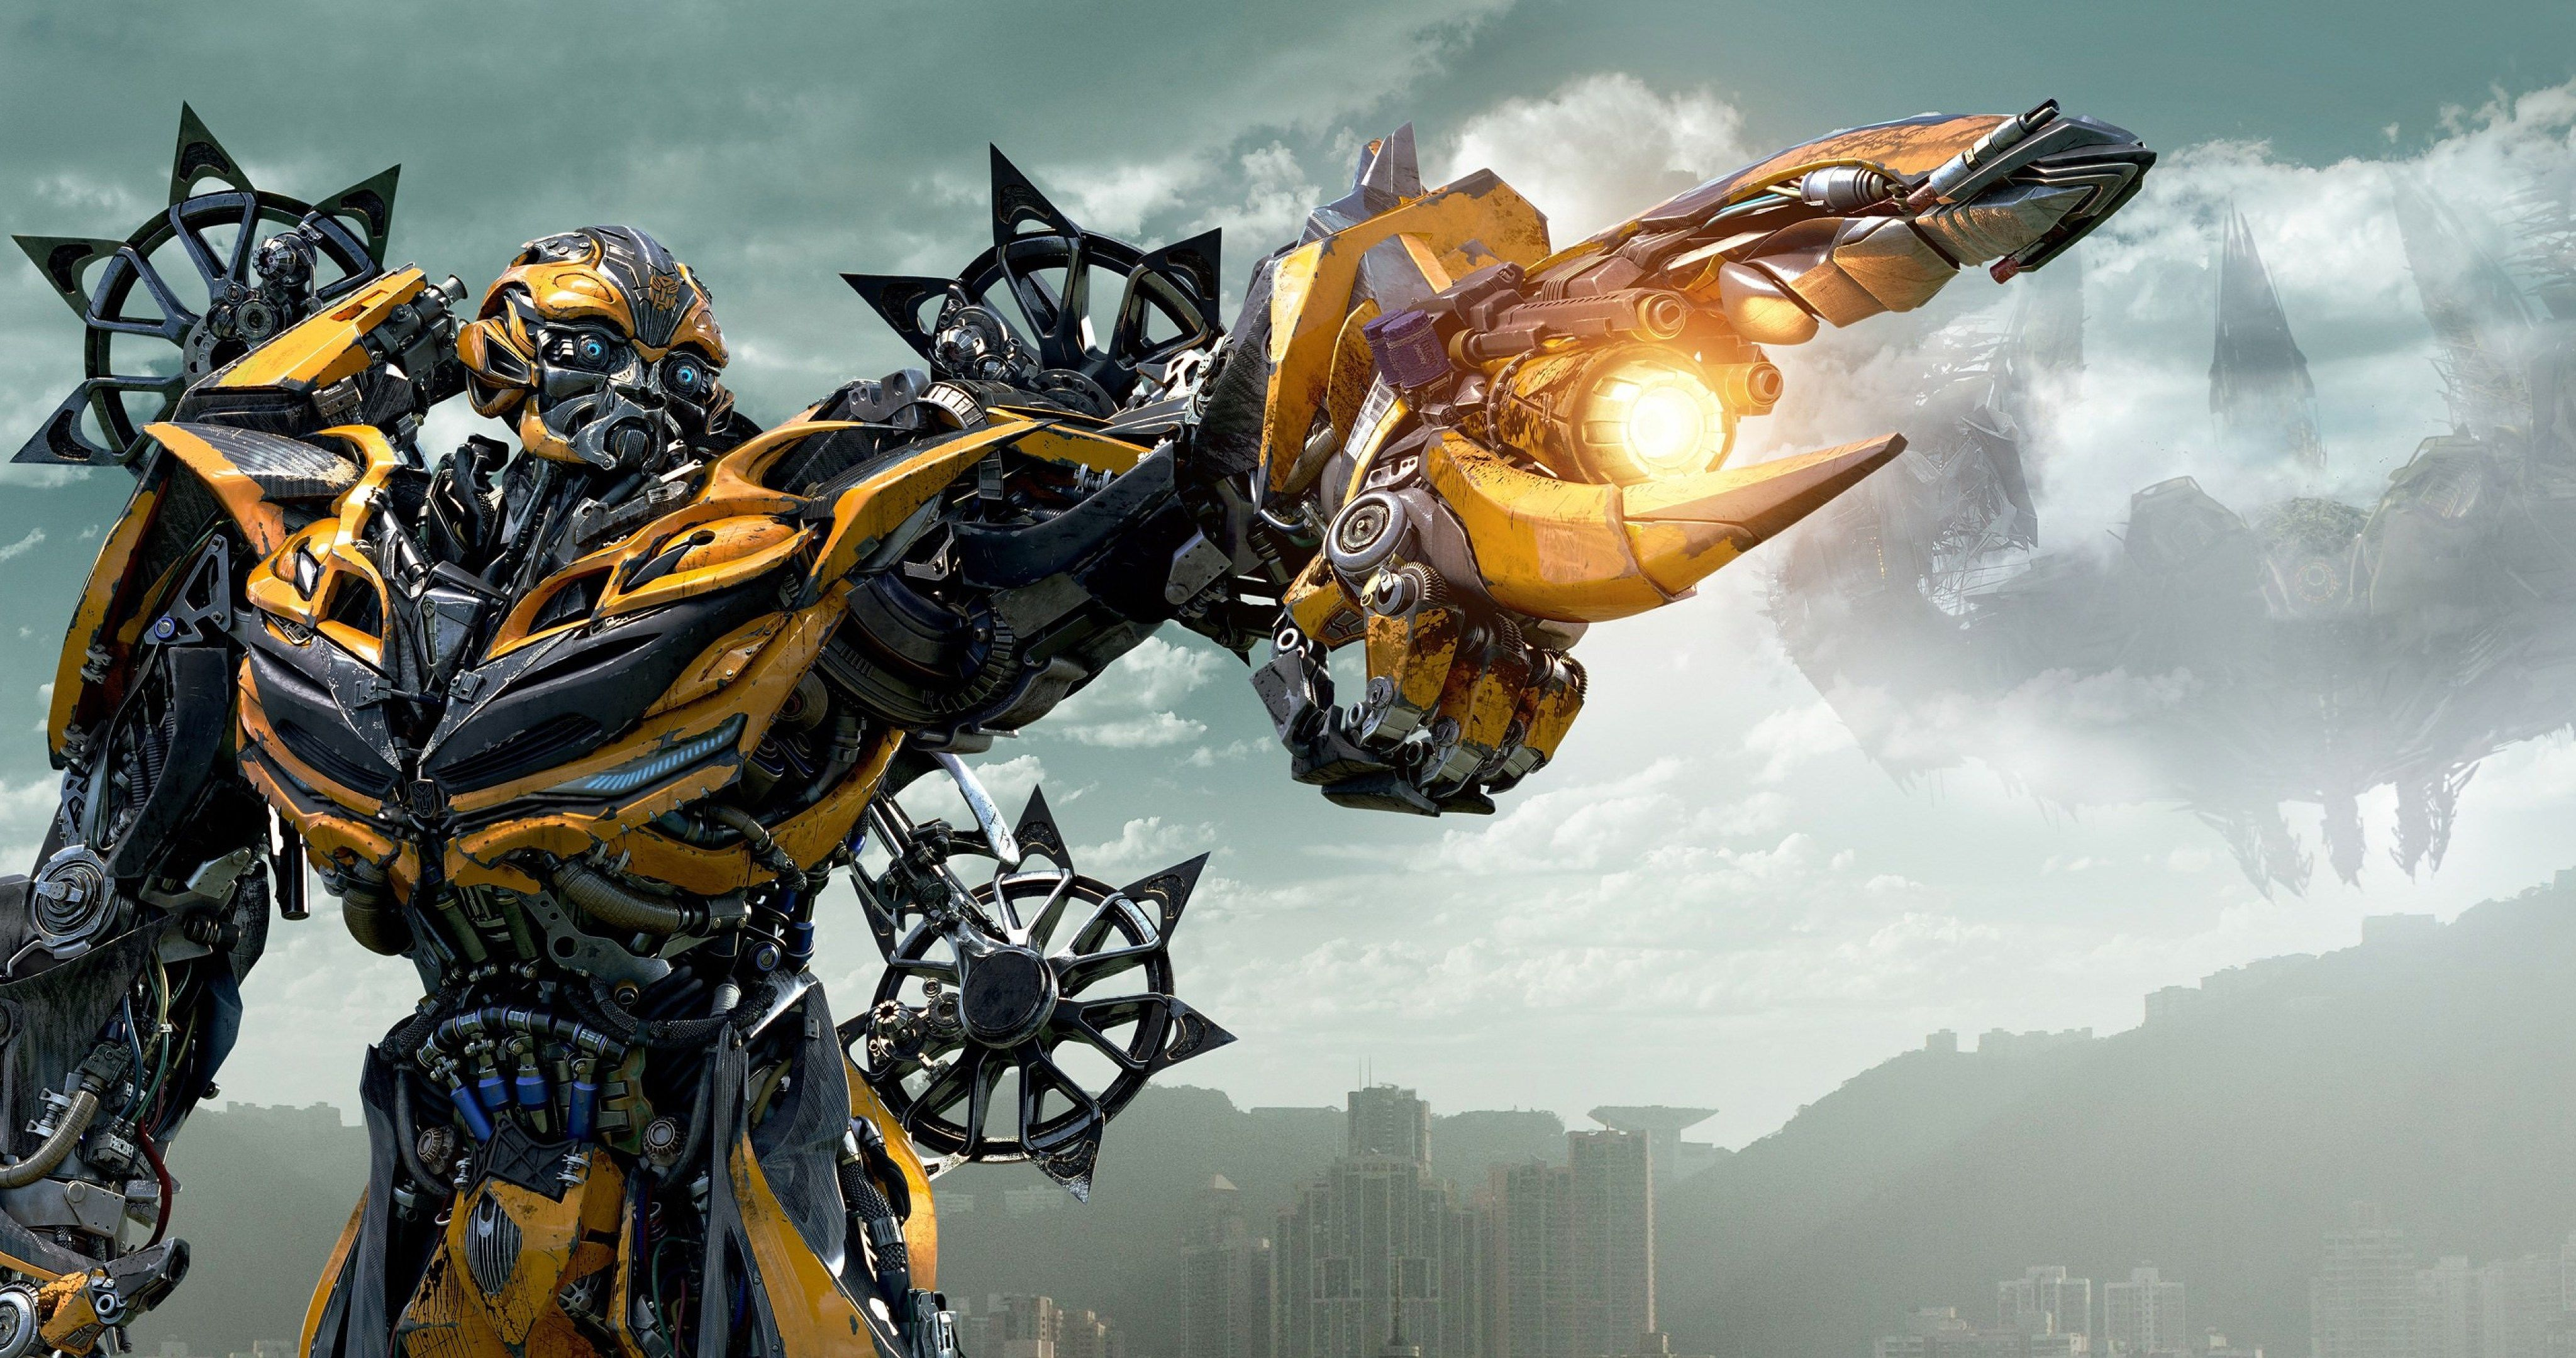 Transformers Age Of Extinction 4k Ultra Hd Wallpaper Transformers Age Of Extinction Transformers Age Age Of Extinction